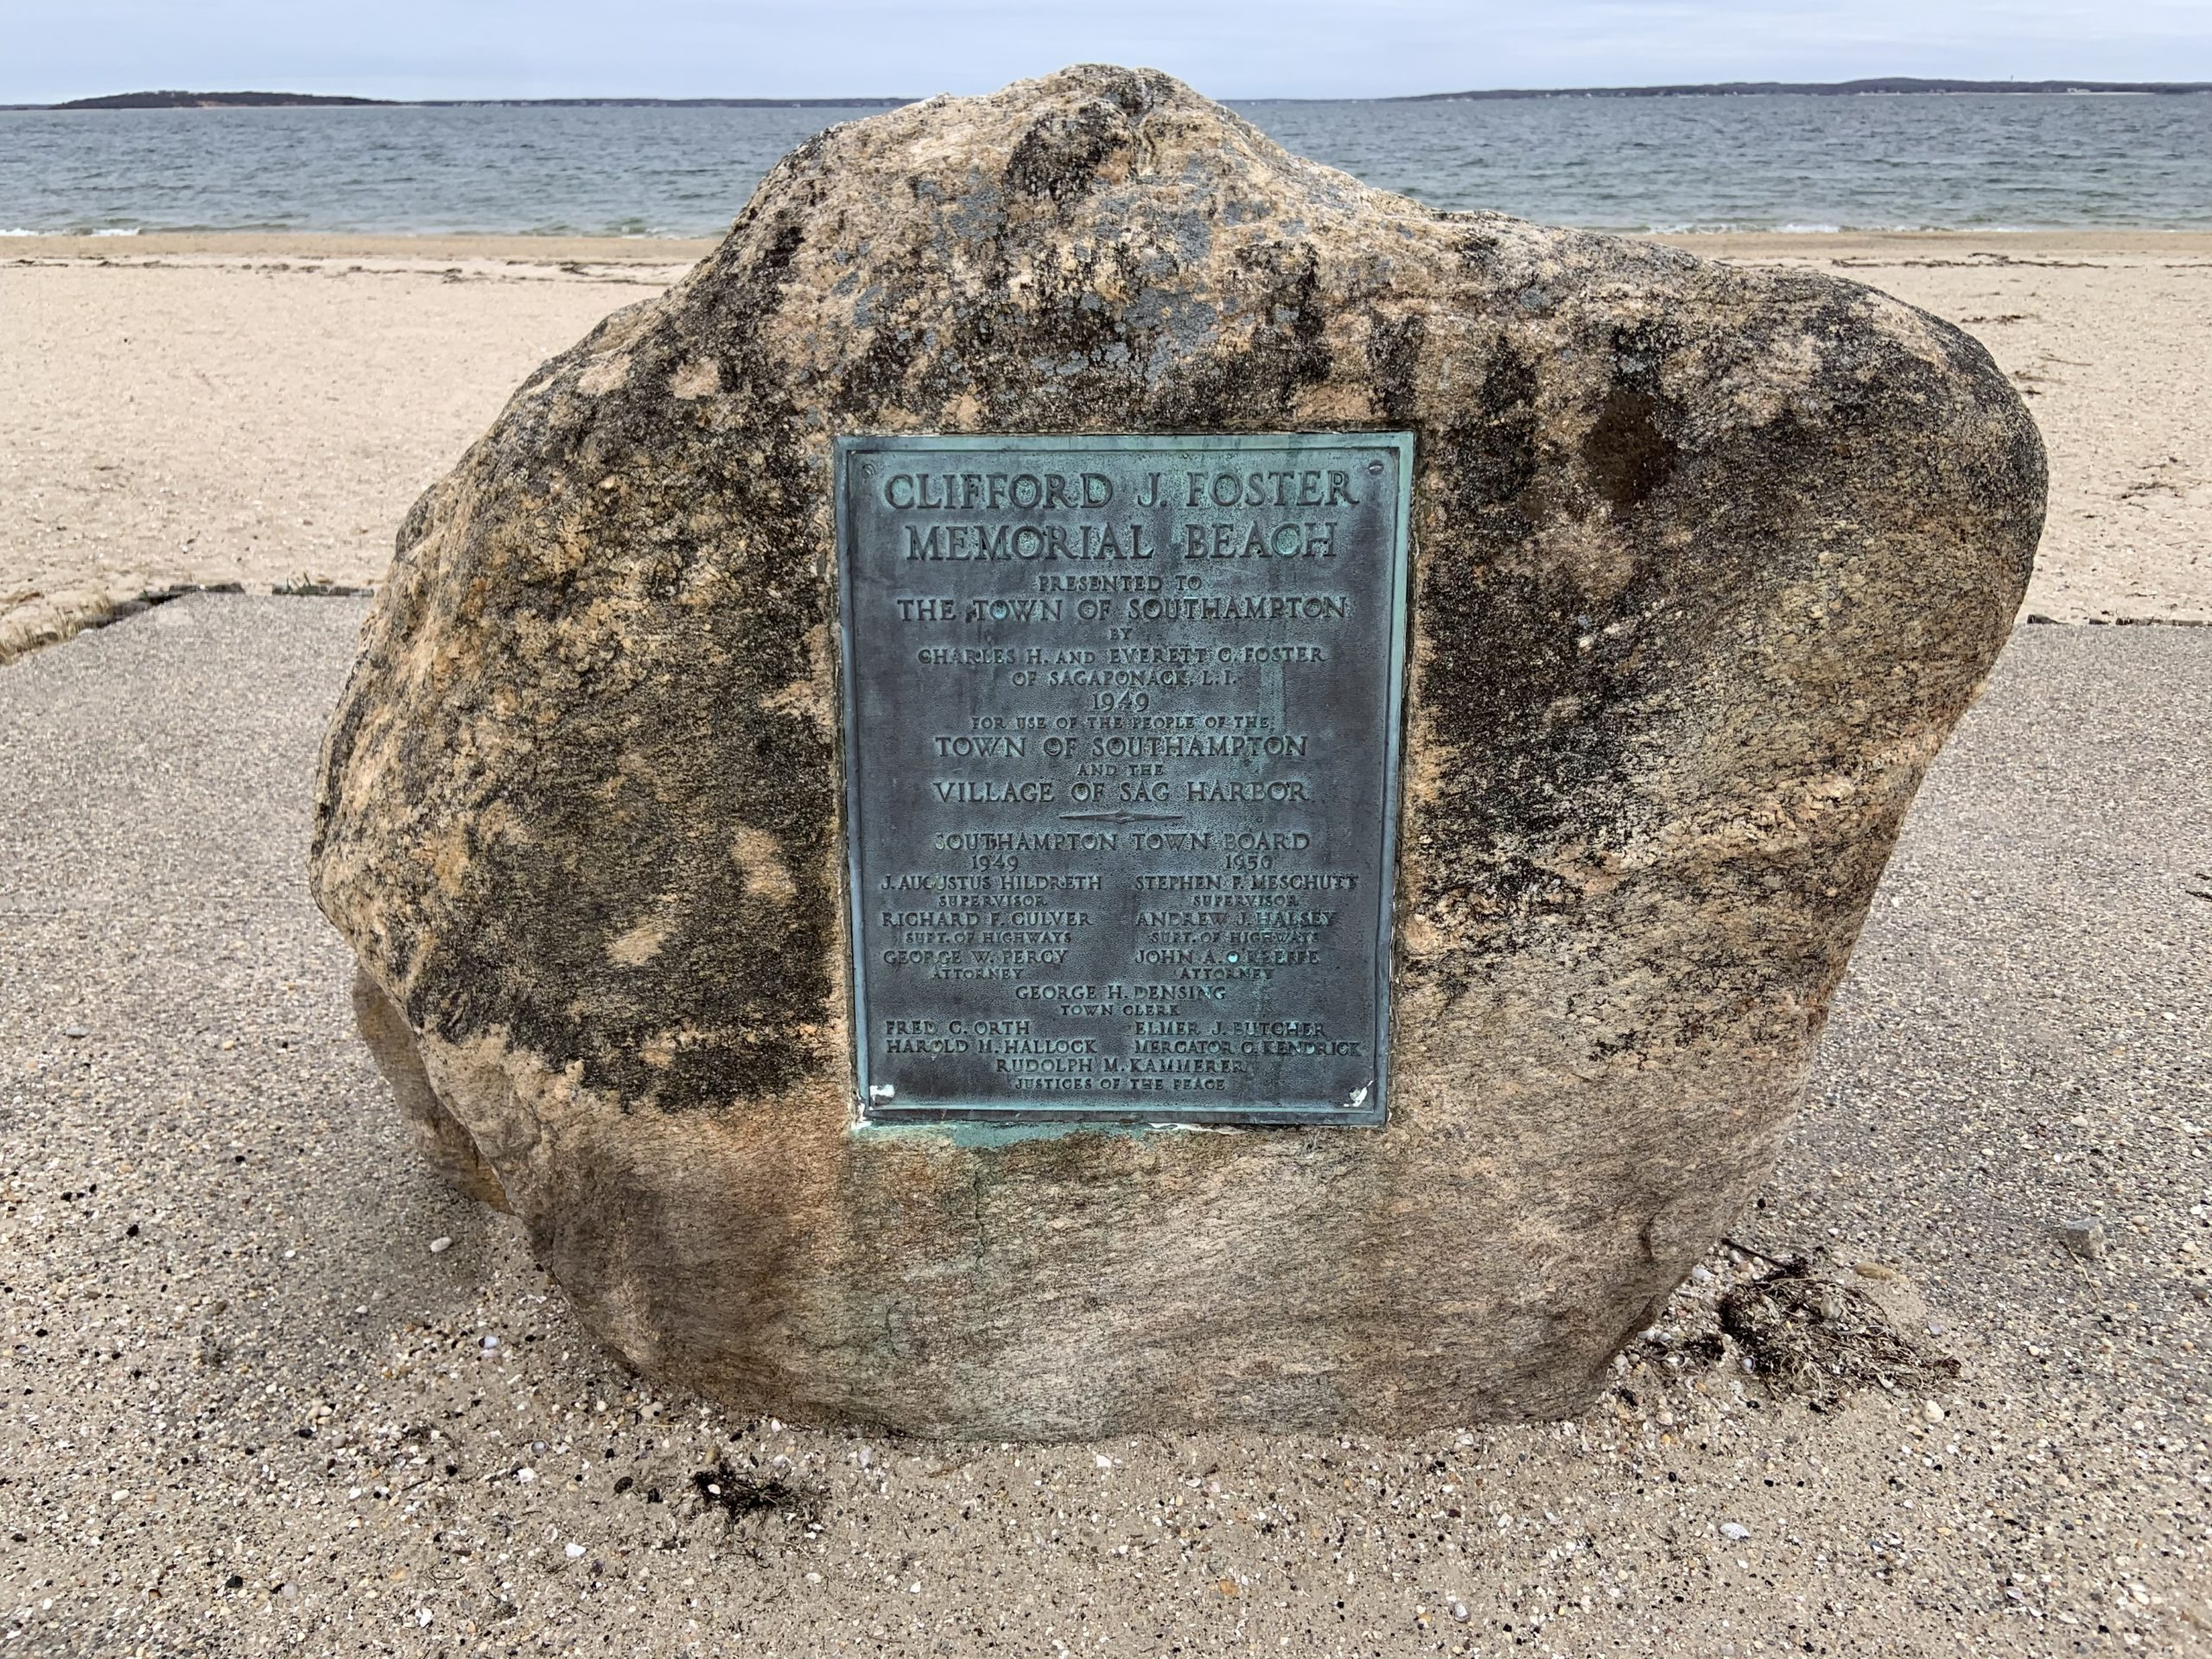 A plaque dedicating Clifford J. Foster Memorial Beach to the residents of both Southampton Town and Sag Harbor Village is placed at what is commonly called Long Beach.  Stephen J. Kotz